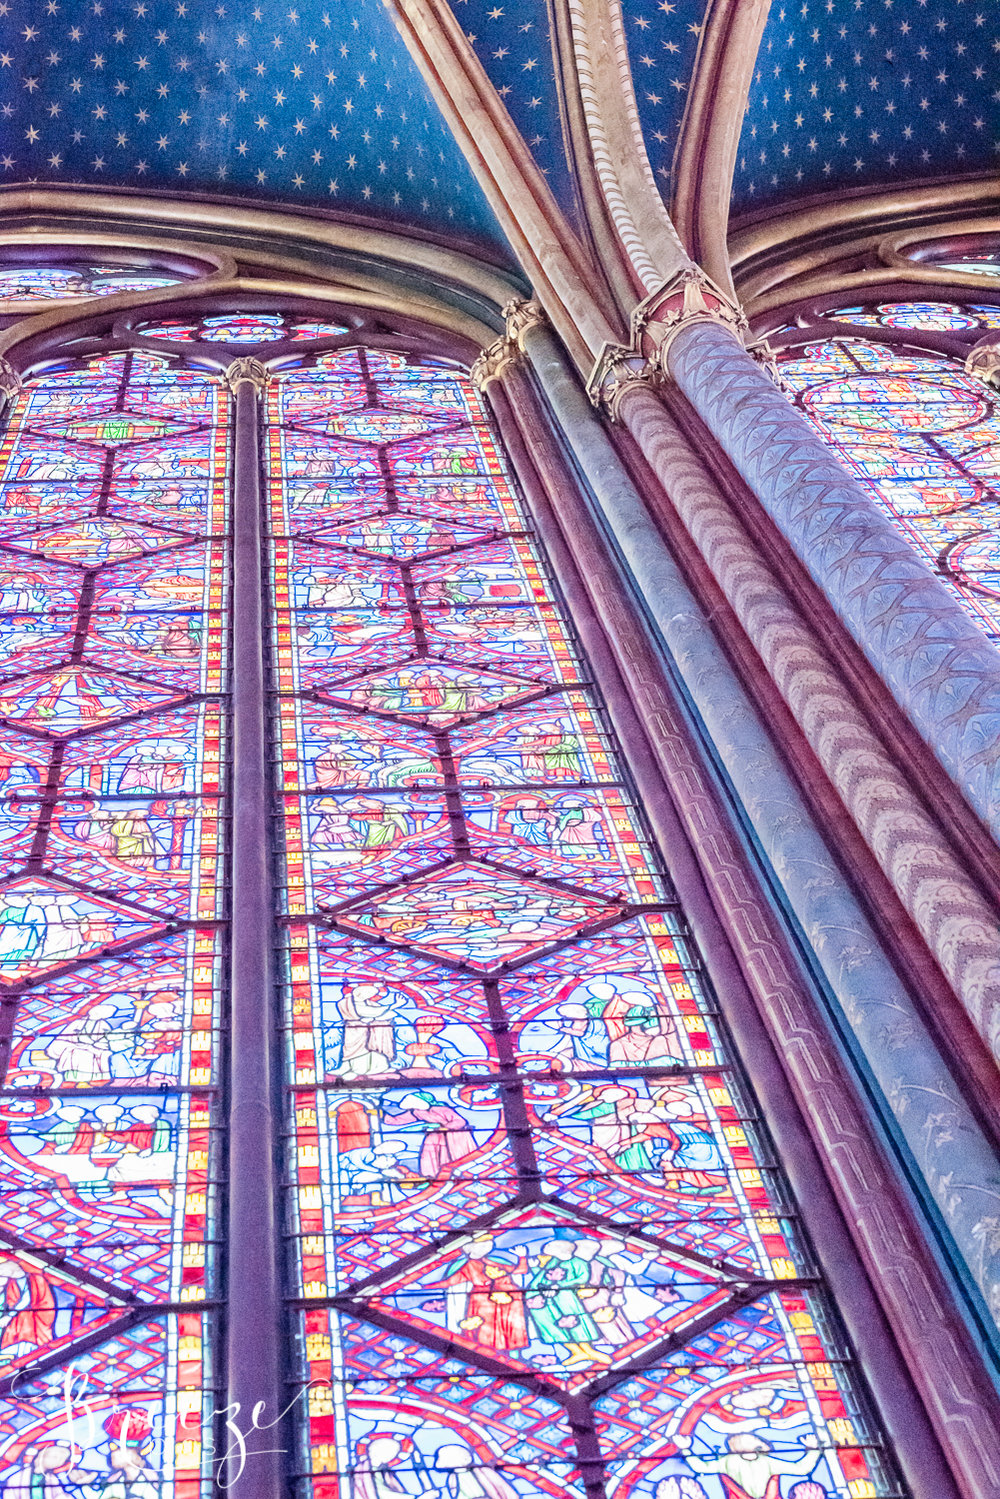 Sainte_Chapelle_window_columns.jpg